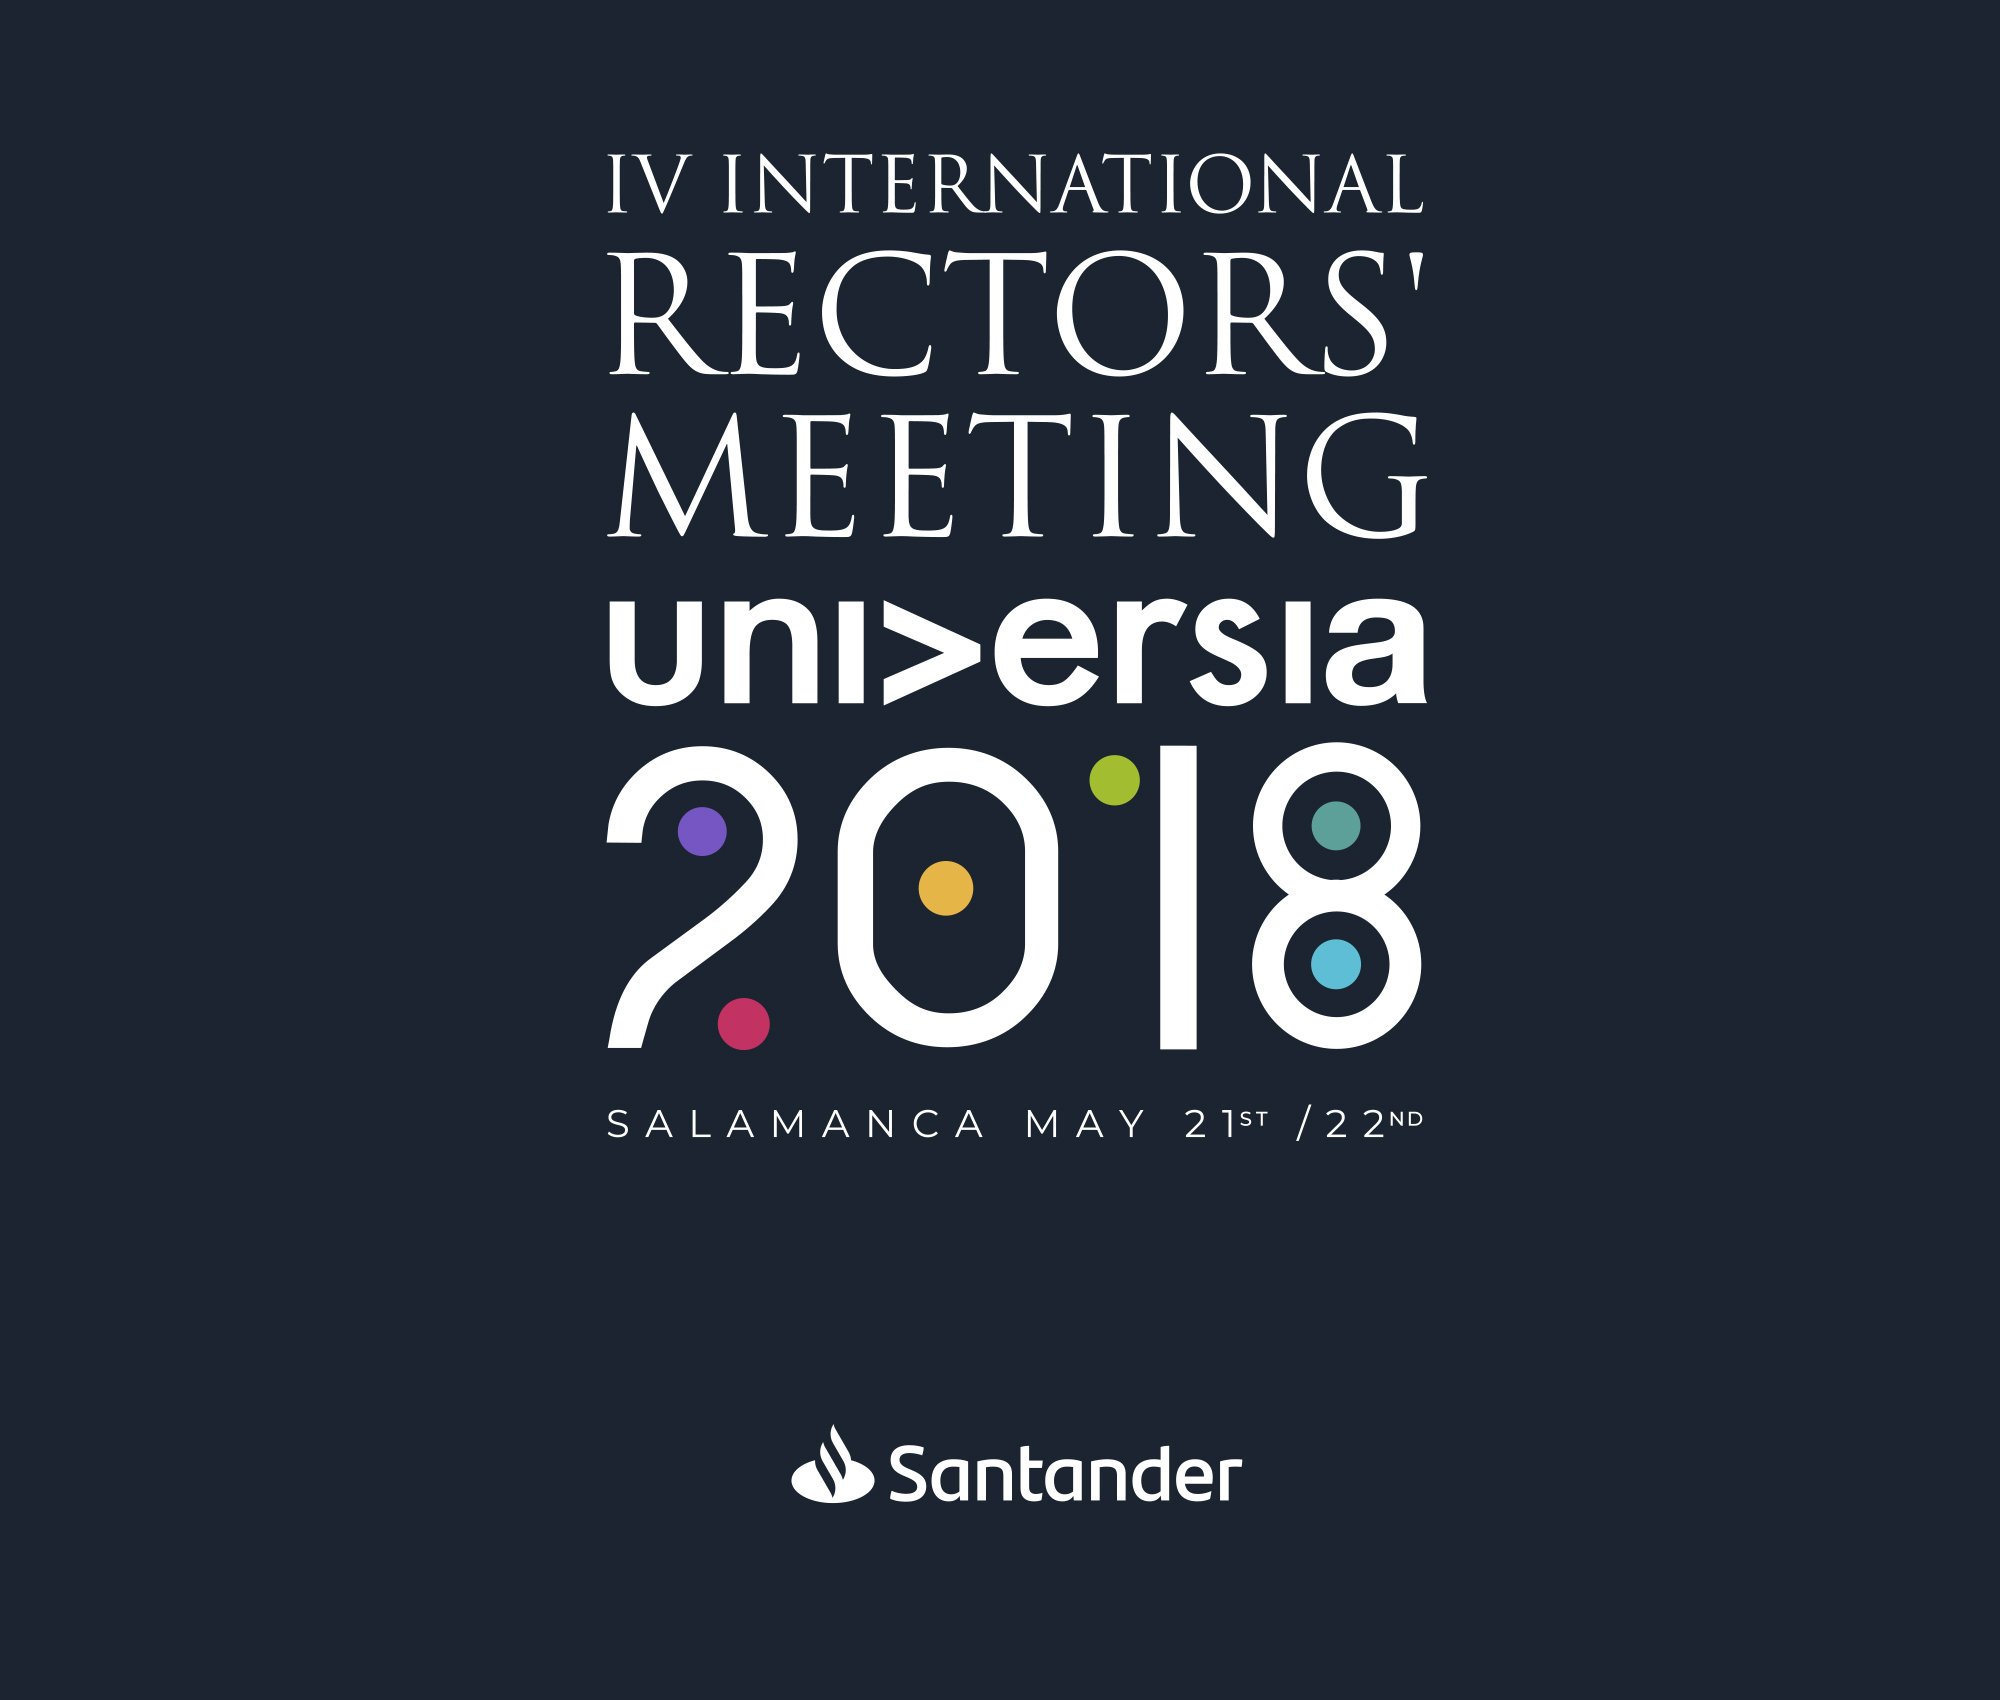 IV International Rectors' Meeting Universia 2018